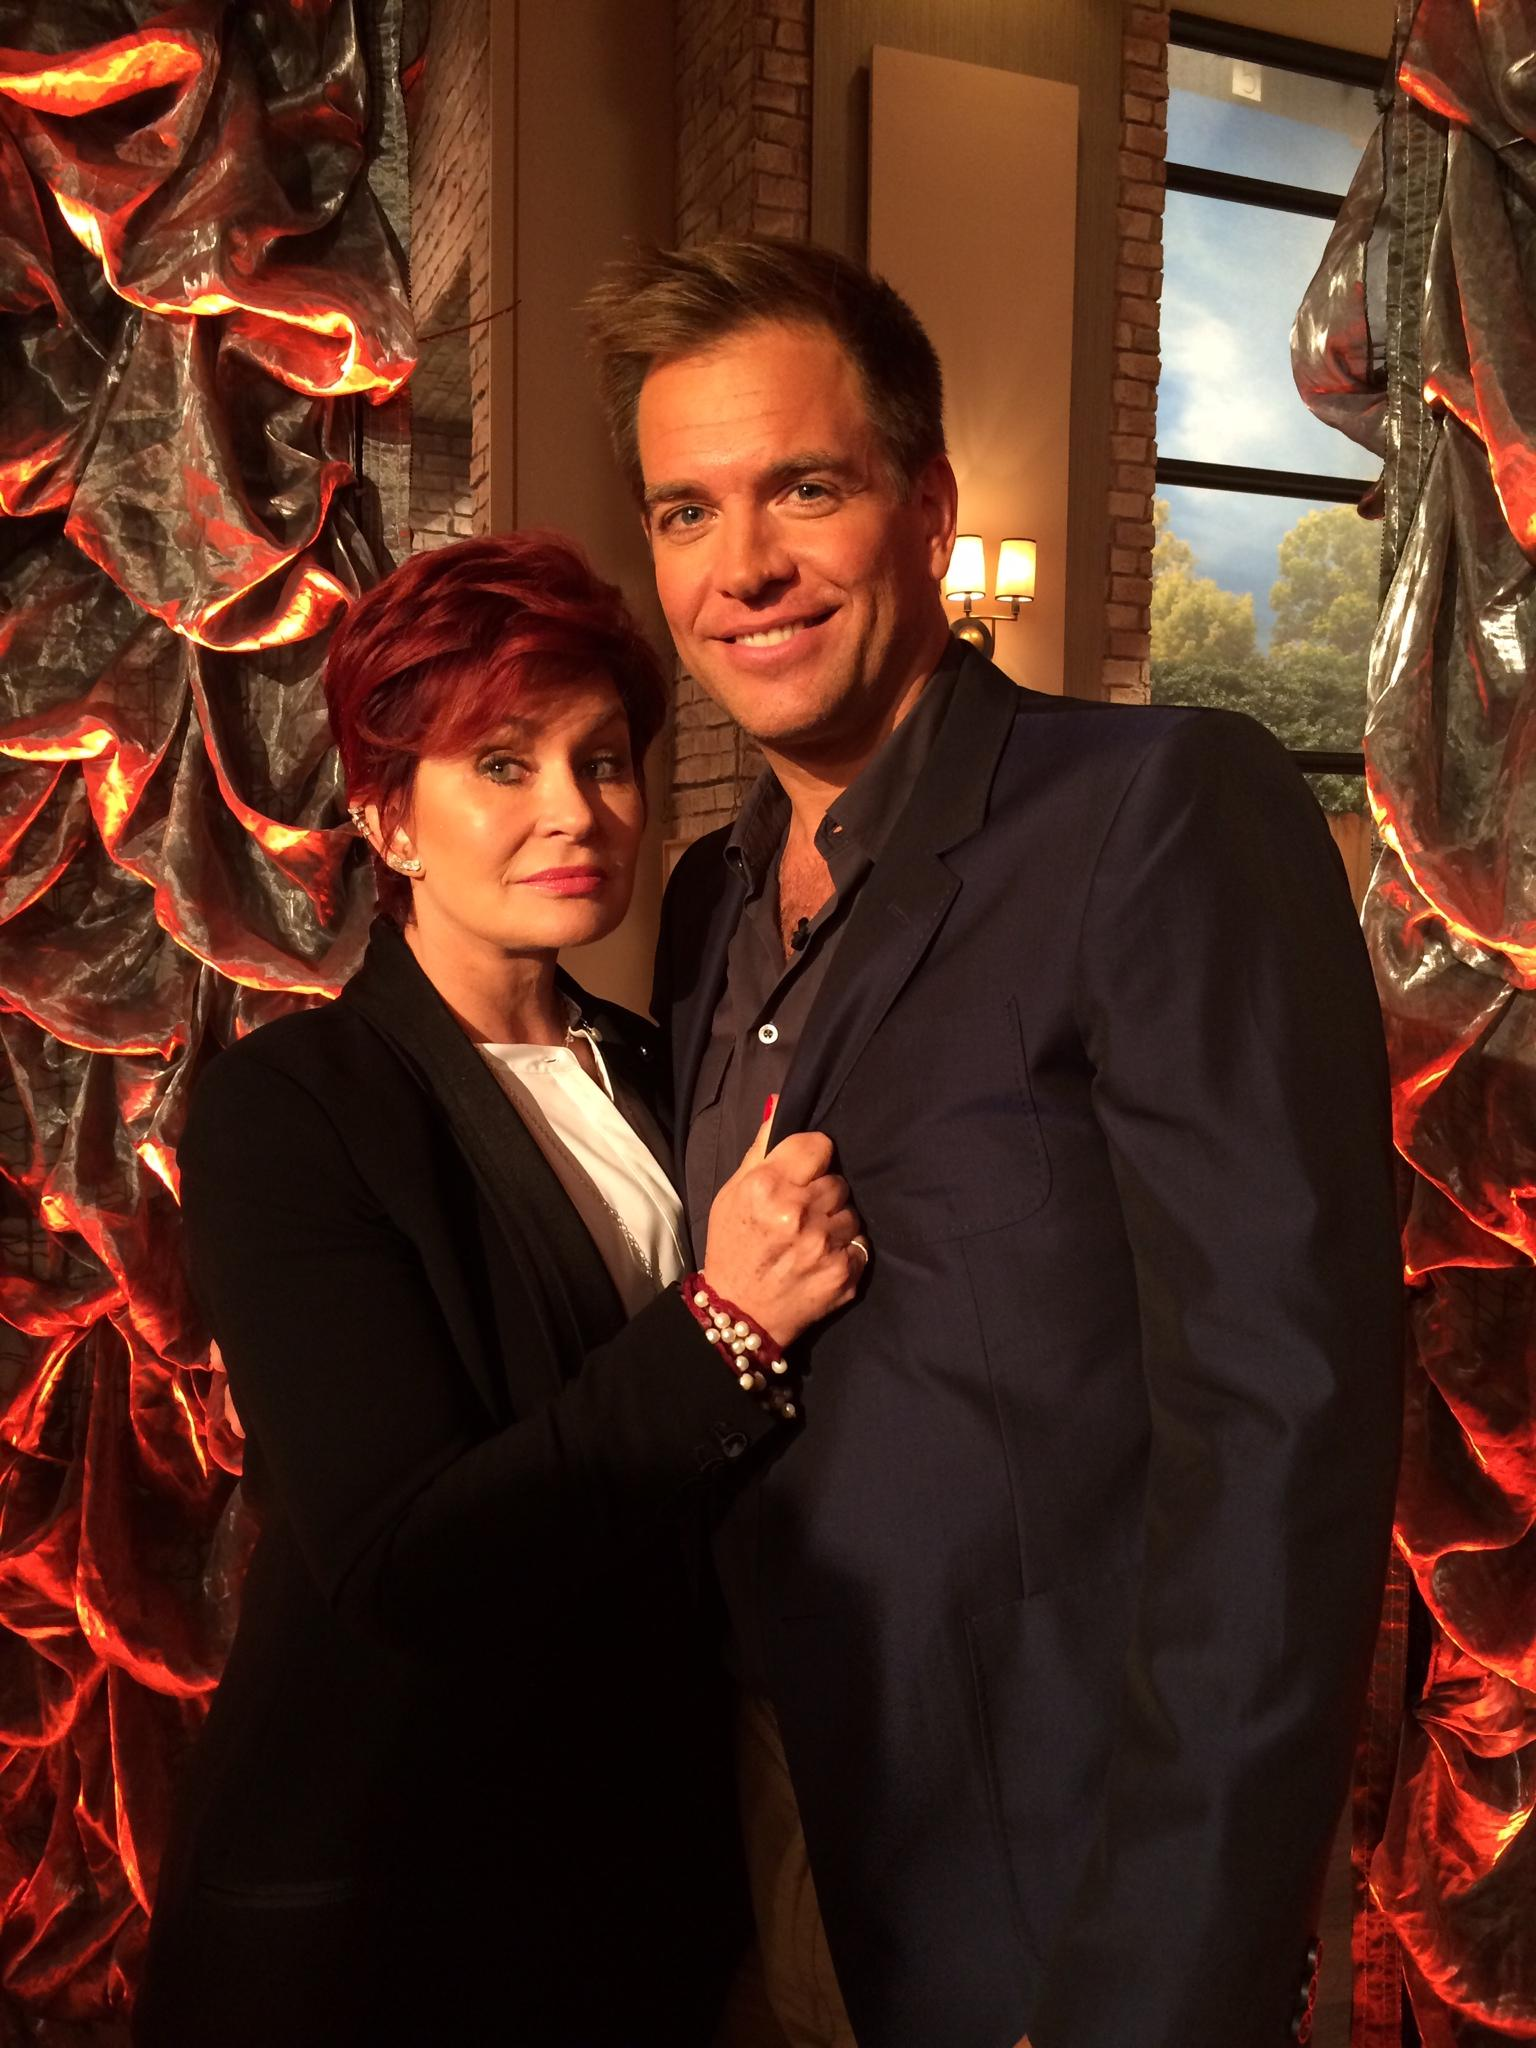 .@M_Weatherly has lost 35 lbs. He says it was exercise, but I know it was #Atkins! :) http://t.co/9Tj8do0XS2